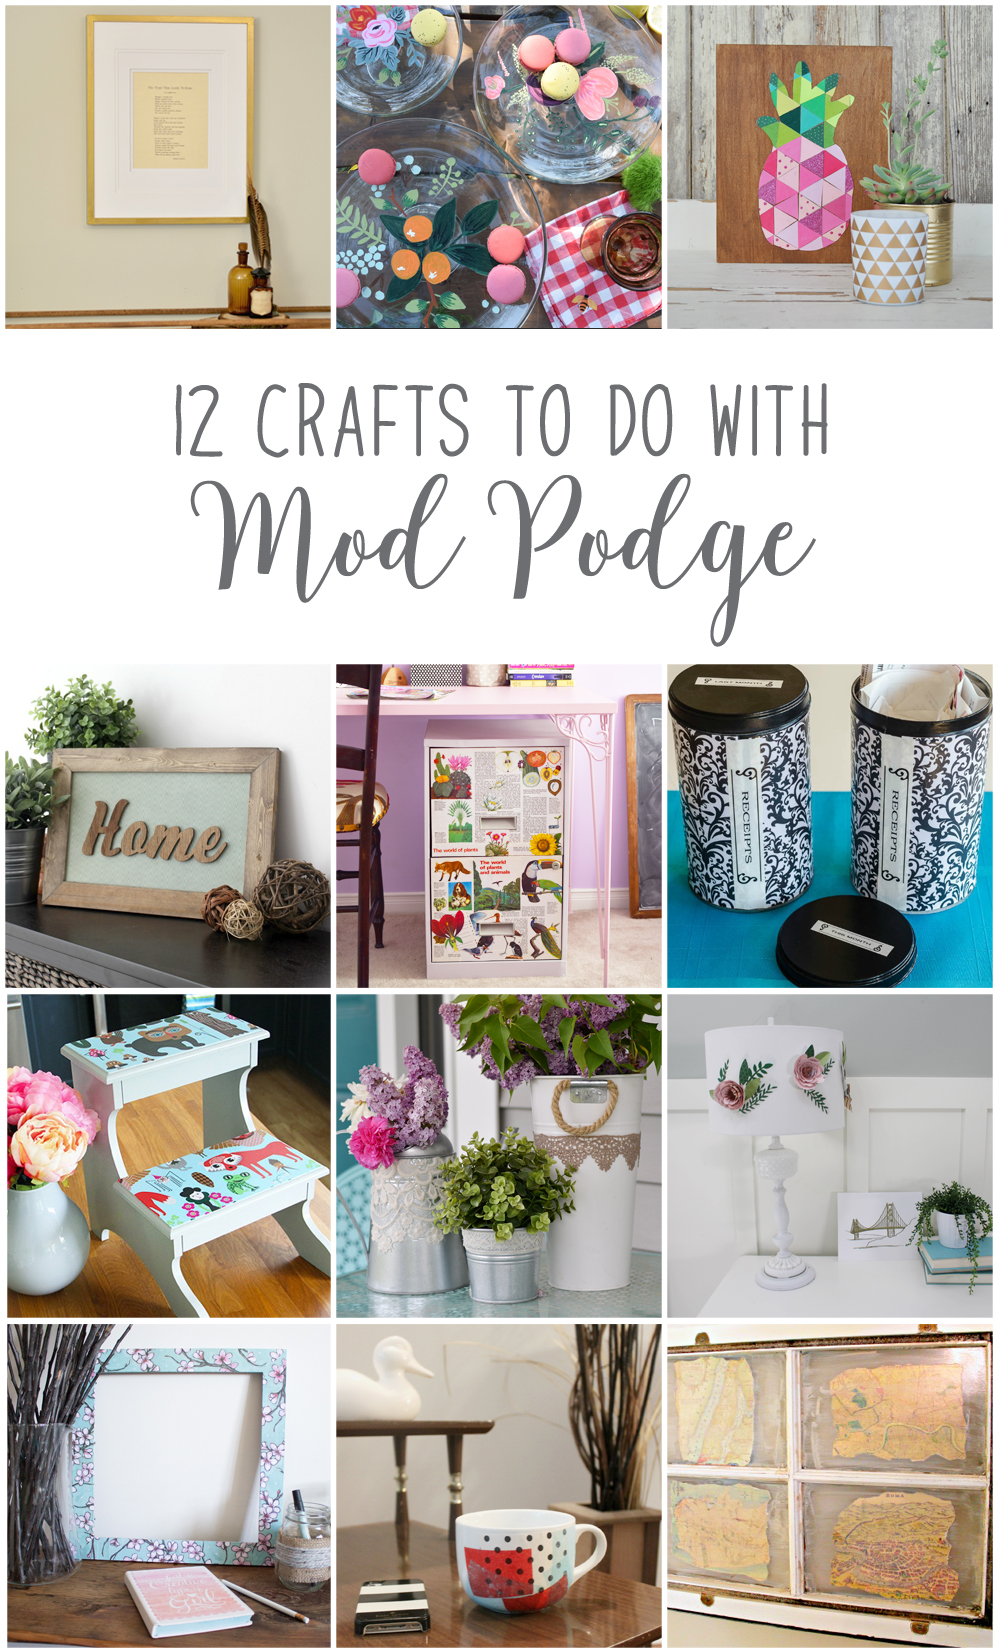 12 fun arts and crafts ideas to make using Mod Podge including upcycling a photo frame into a new piece of DIY wall art.